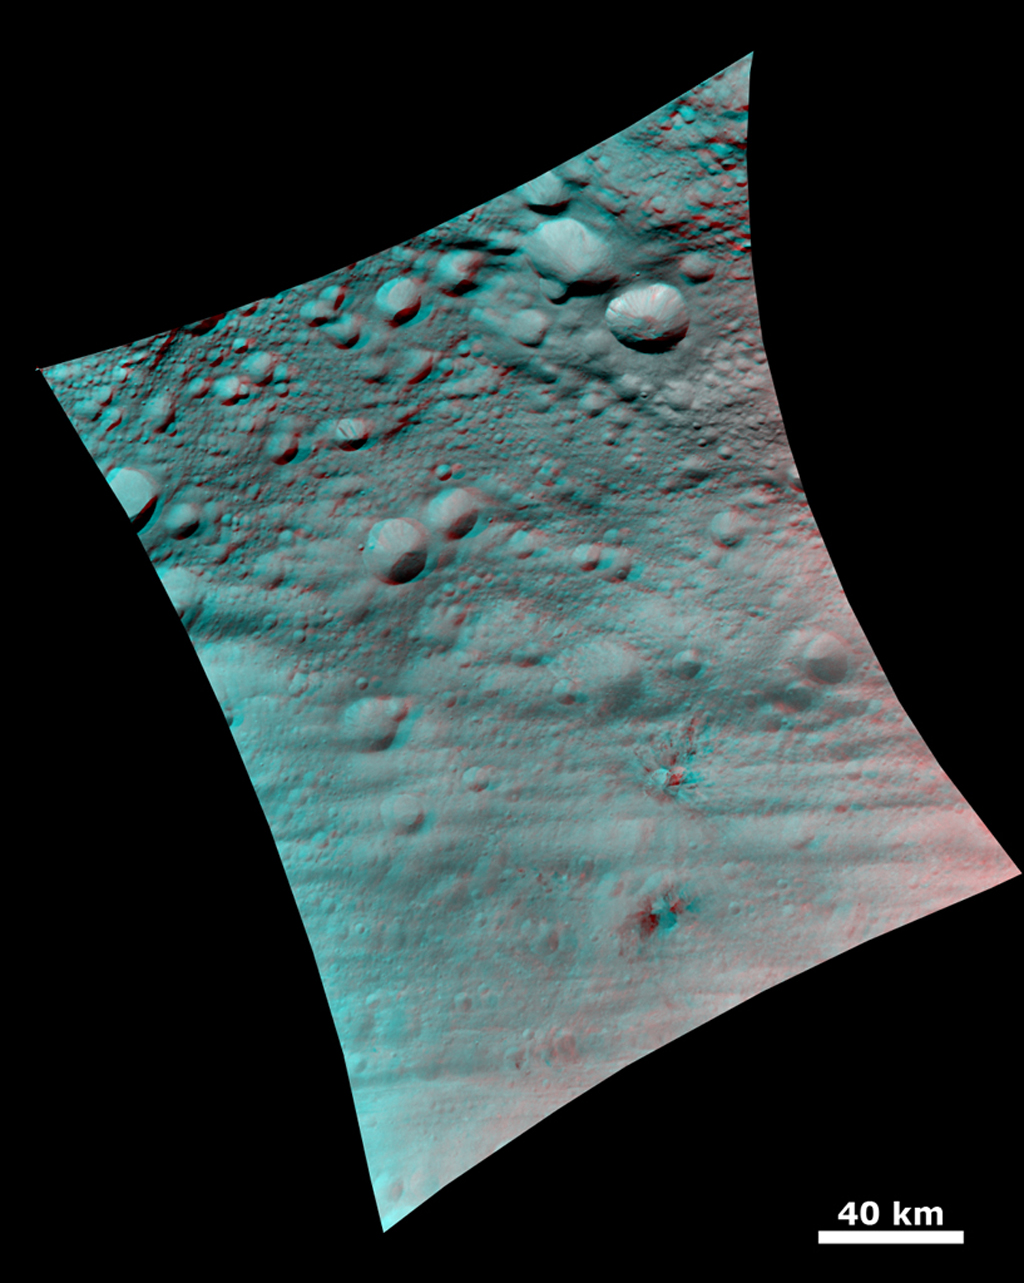 This 3-D image shows the topography of Vesta's densely cratered terrain obtained by the framing camera instrument aboard NASA's Dawn spacecraft on August 6, 2011. You need 3D glasses to view this image.